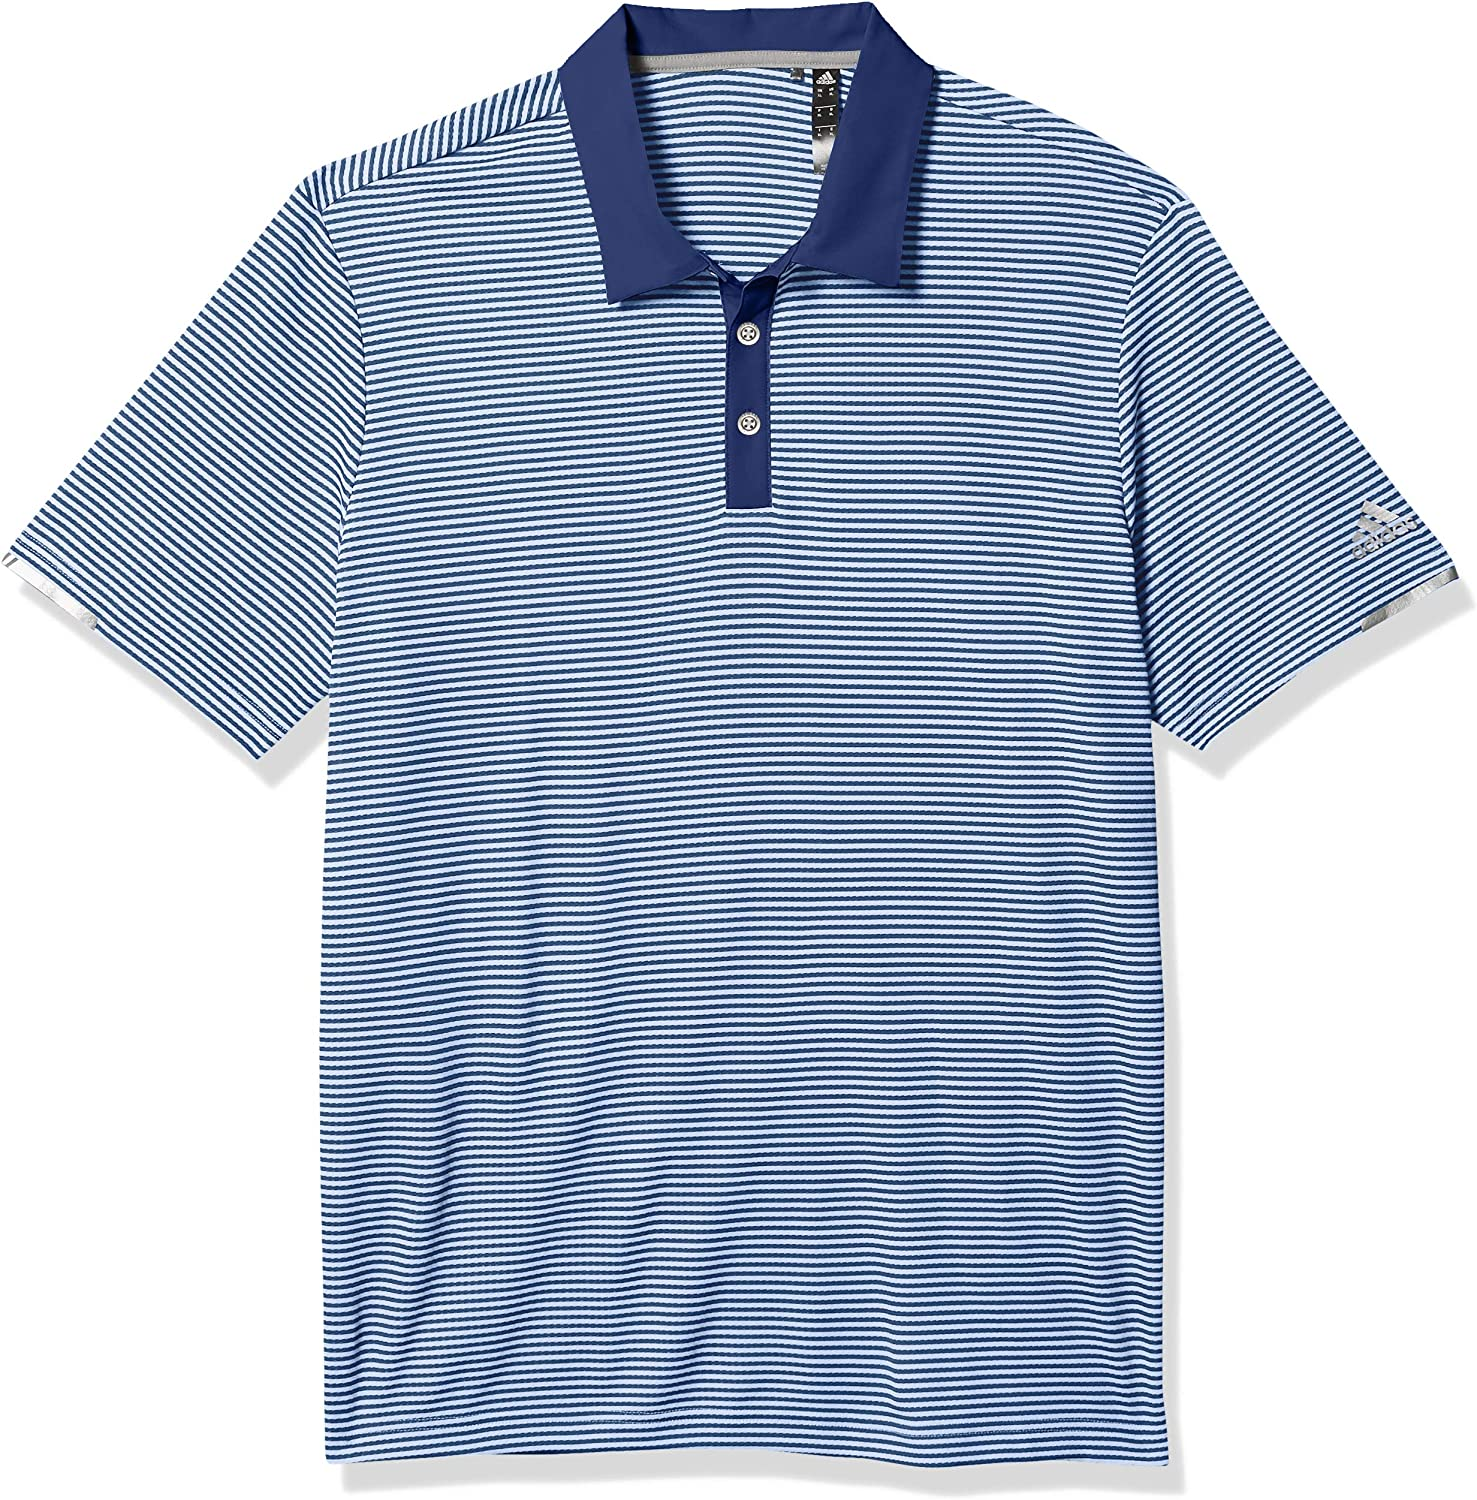 adidas Men's 2021new shipping free Max 82% OFF Heat.rdy Striped Shirt Polo